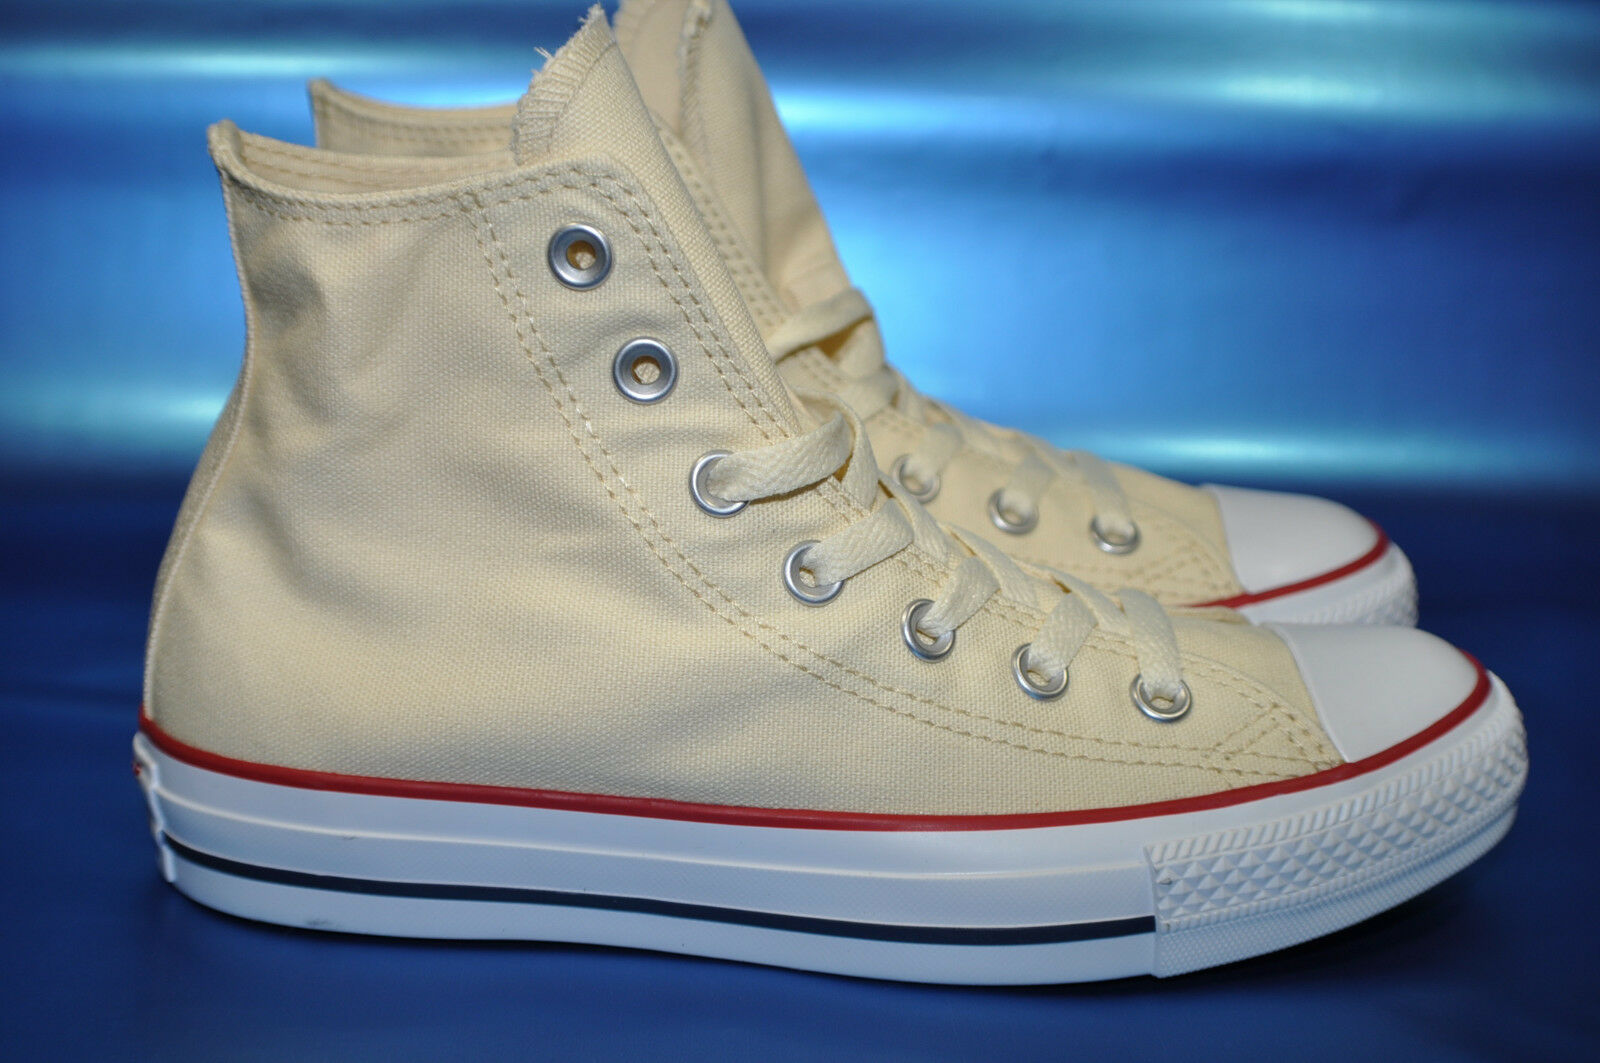 NWOB Women's Converse Chuck Taylor All Star HIGH M9162 Sneakers Size us 8 -B